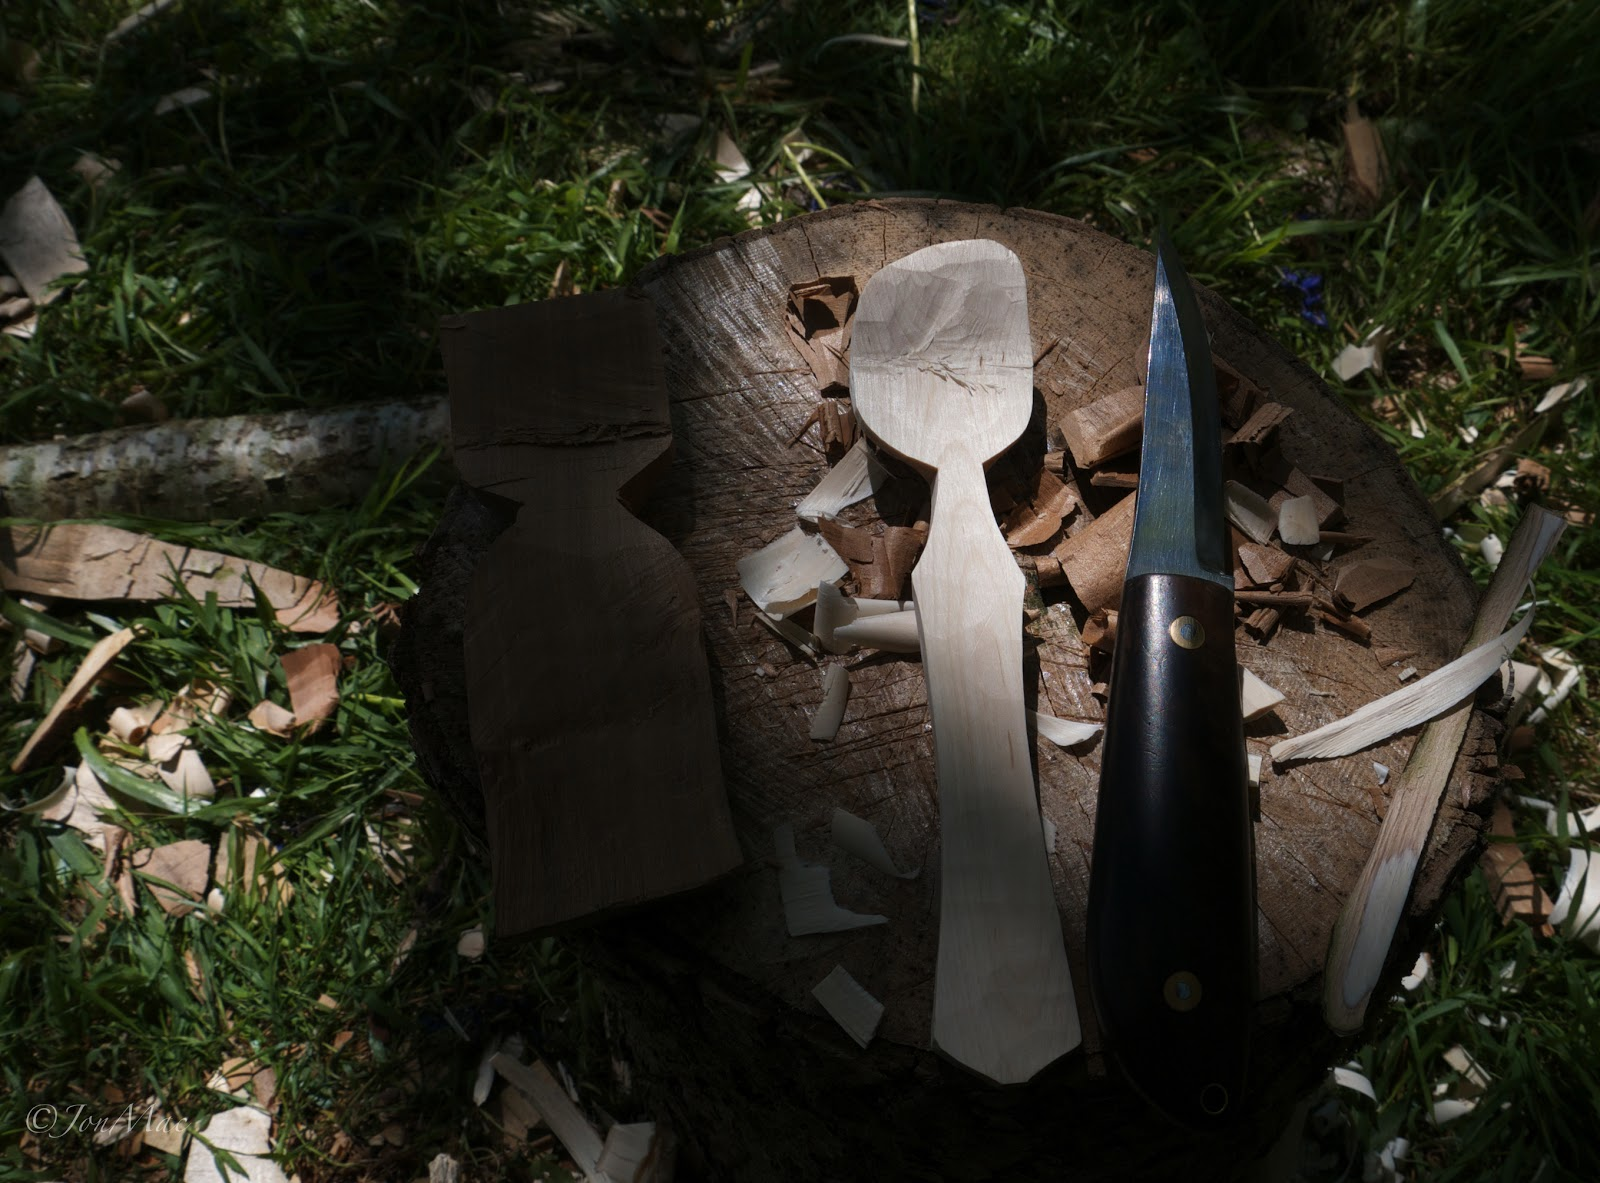 spoon blank+machris bushcraft knife